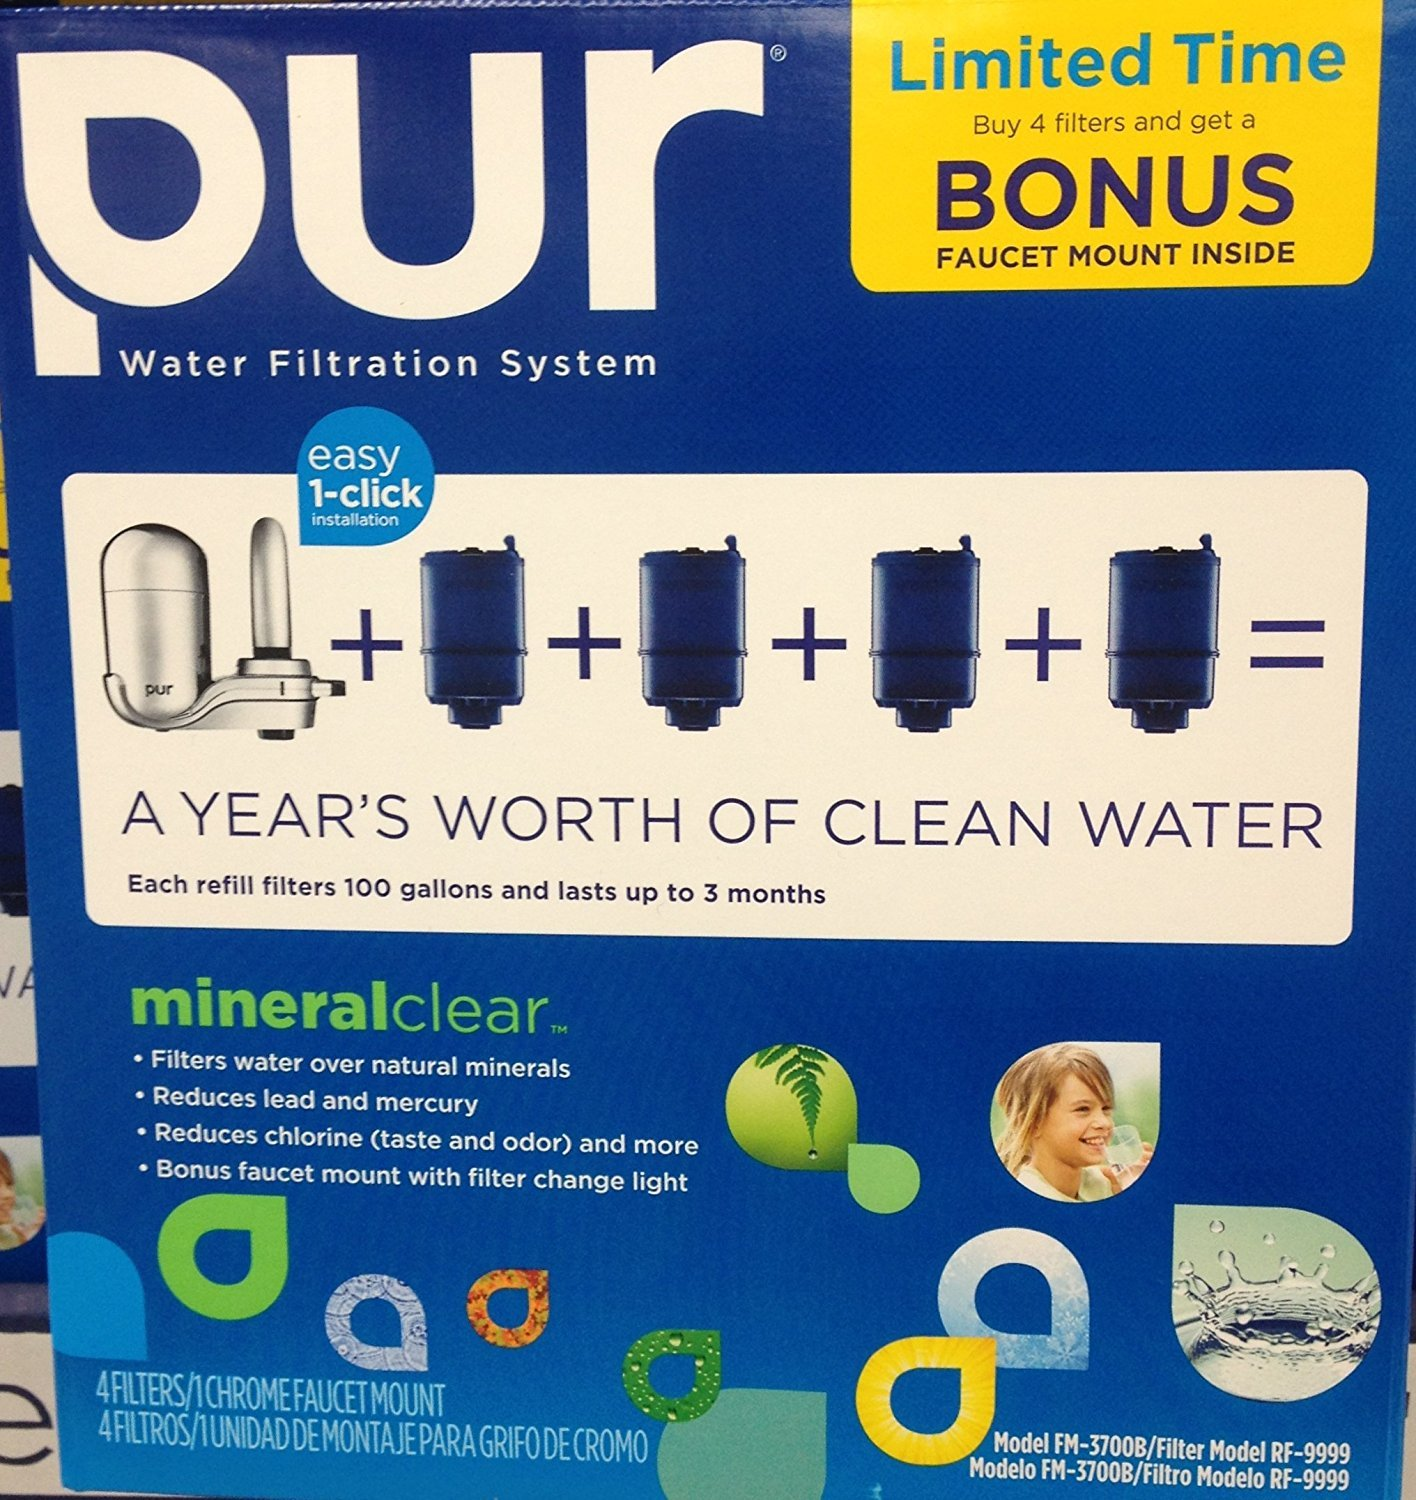 PUR 3-Stage Vertical Faucet Mount in Chrome FM-3700B + 4 Replacement Filters BONUS PACK RM-3700B